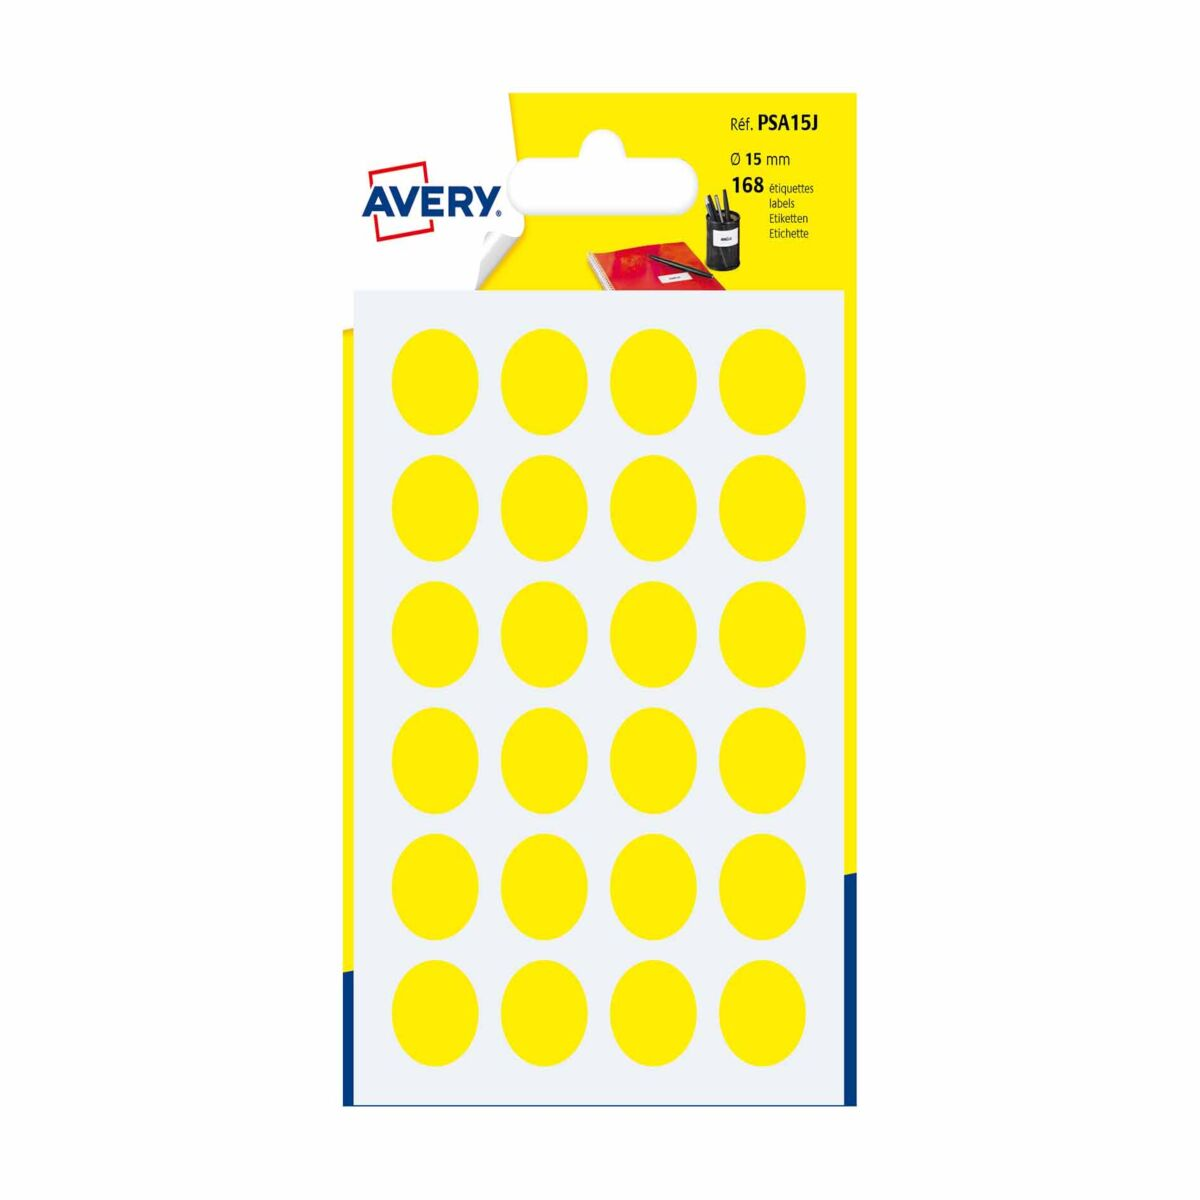 Avery Self Adhesive Labels Dots 15mm Pack of 168